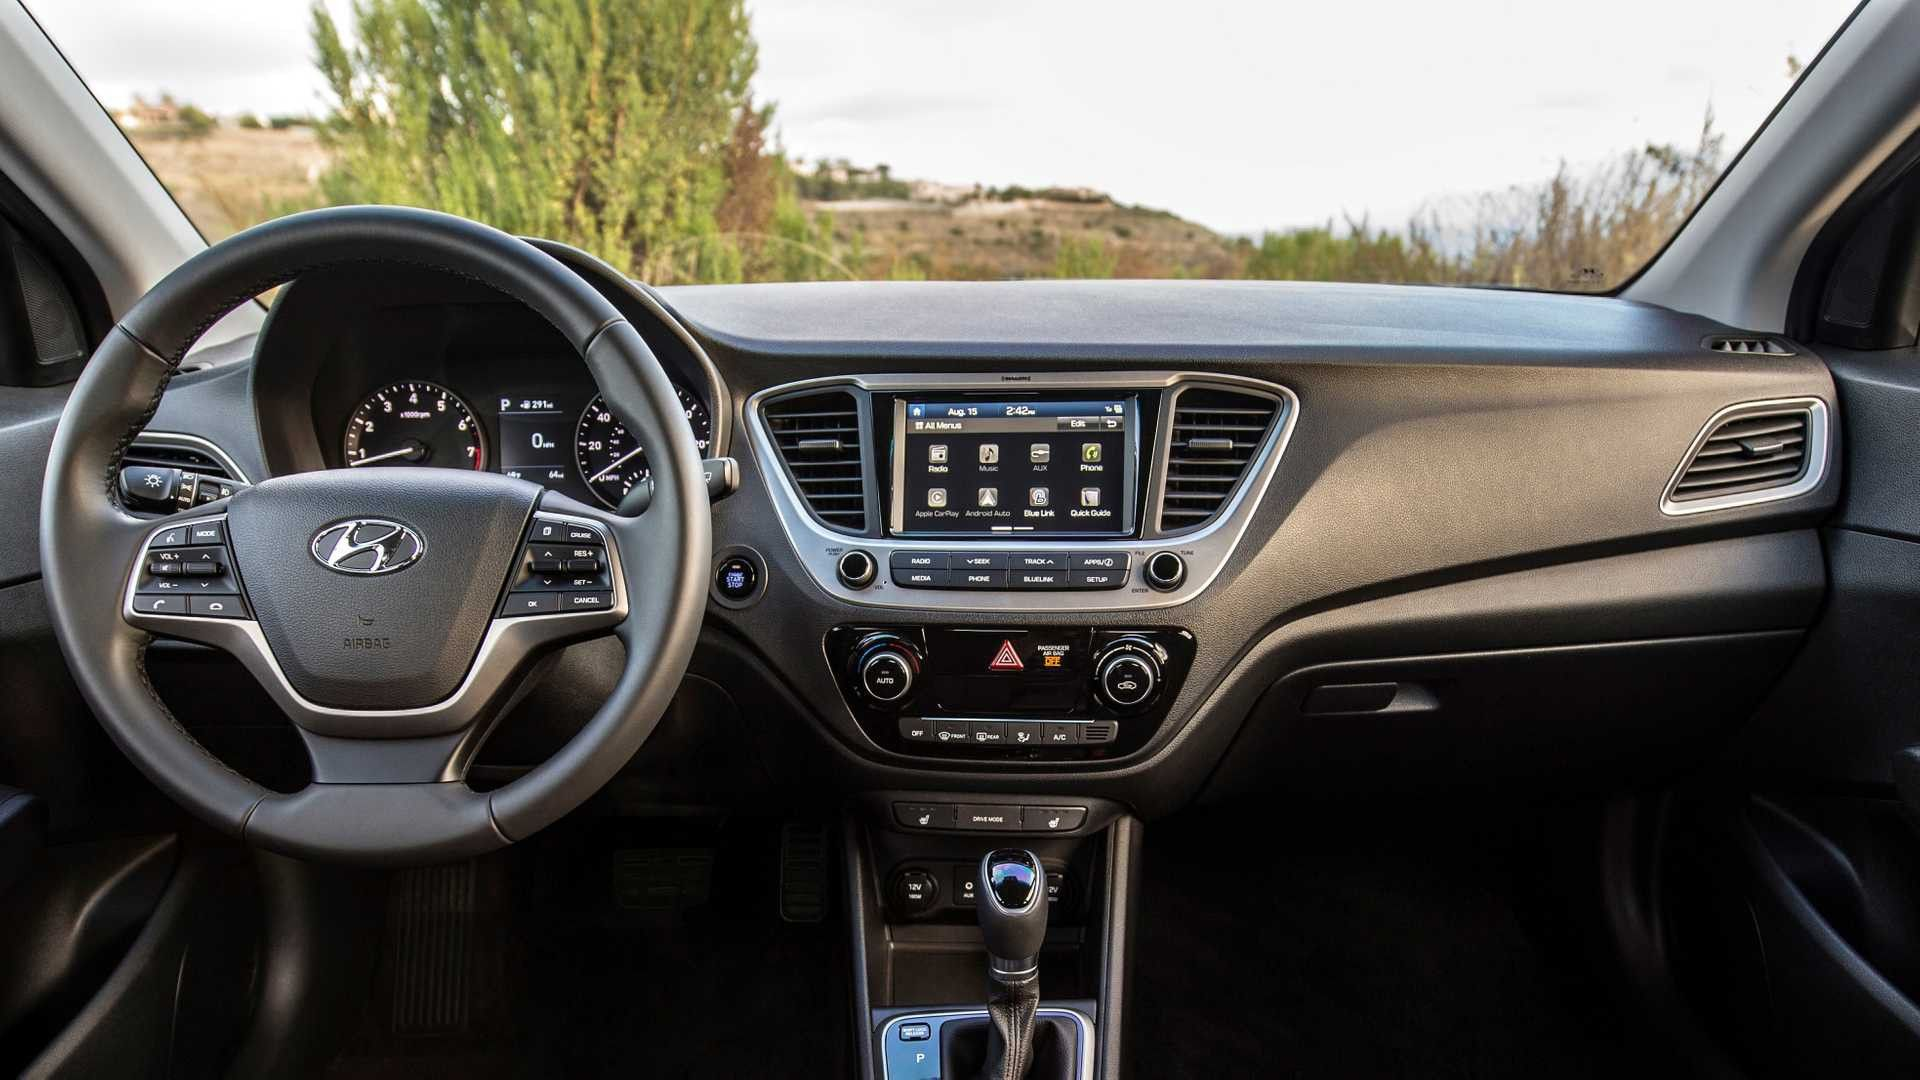 Hyundai Hatchback Accent 2020 Review And Specs Di 2020